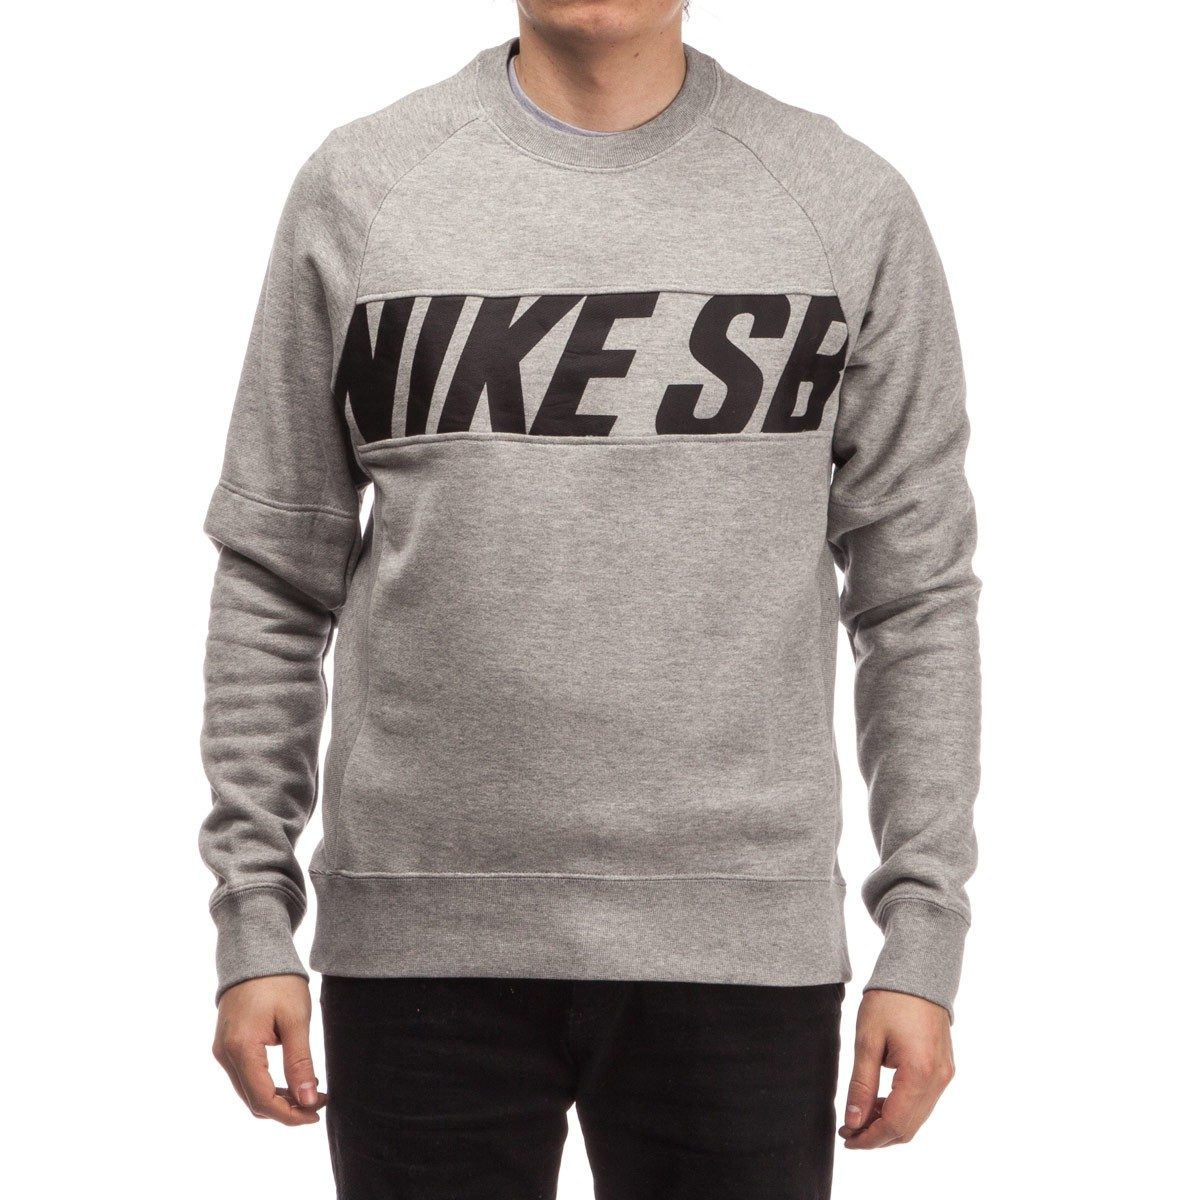 Nike Sb Everett Motion Crew Sweatshirt Dark Grey Heather Black